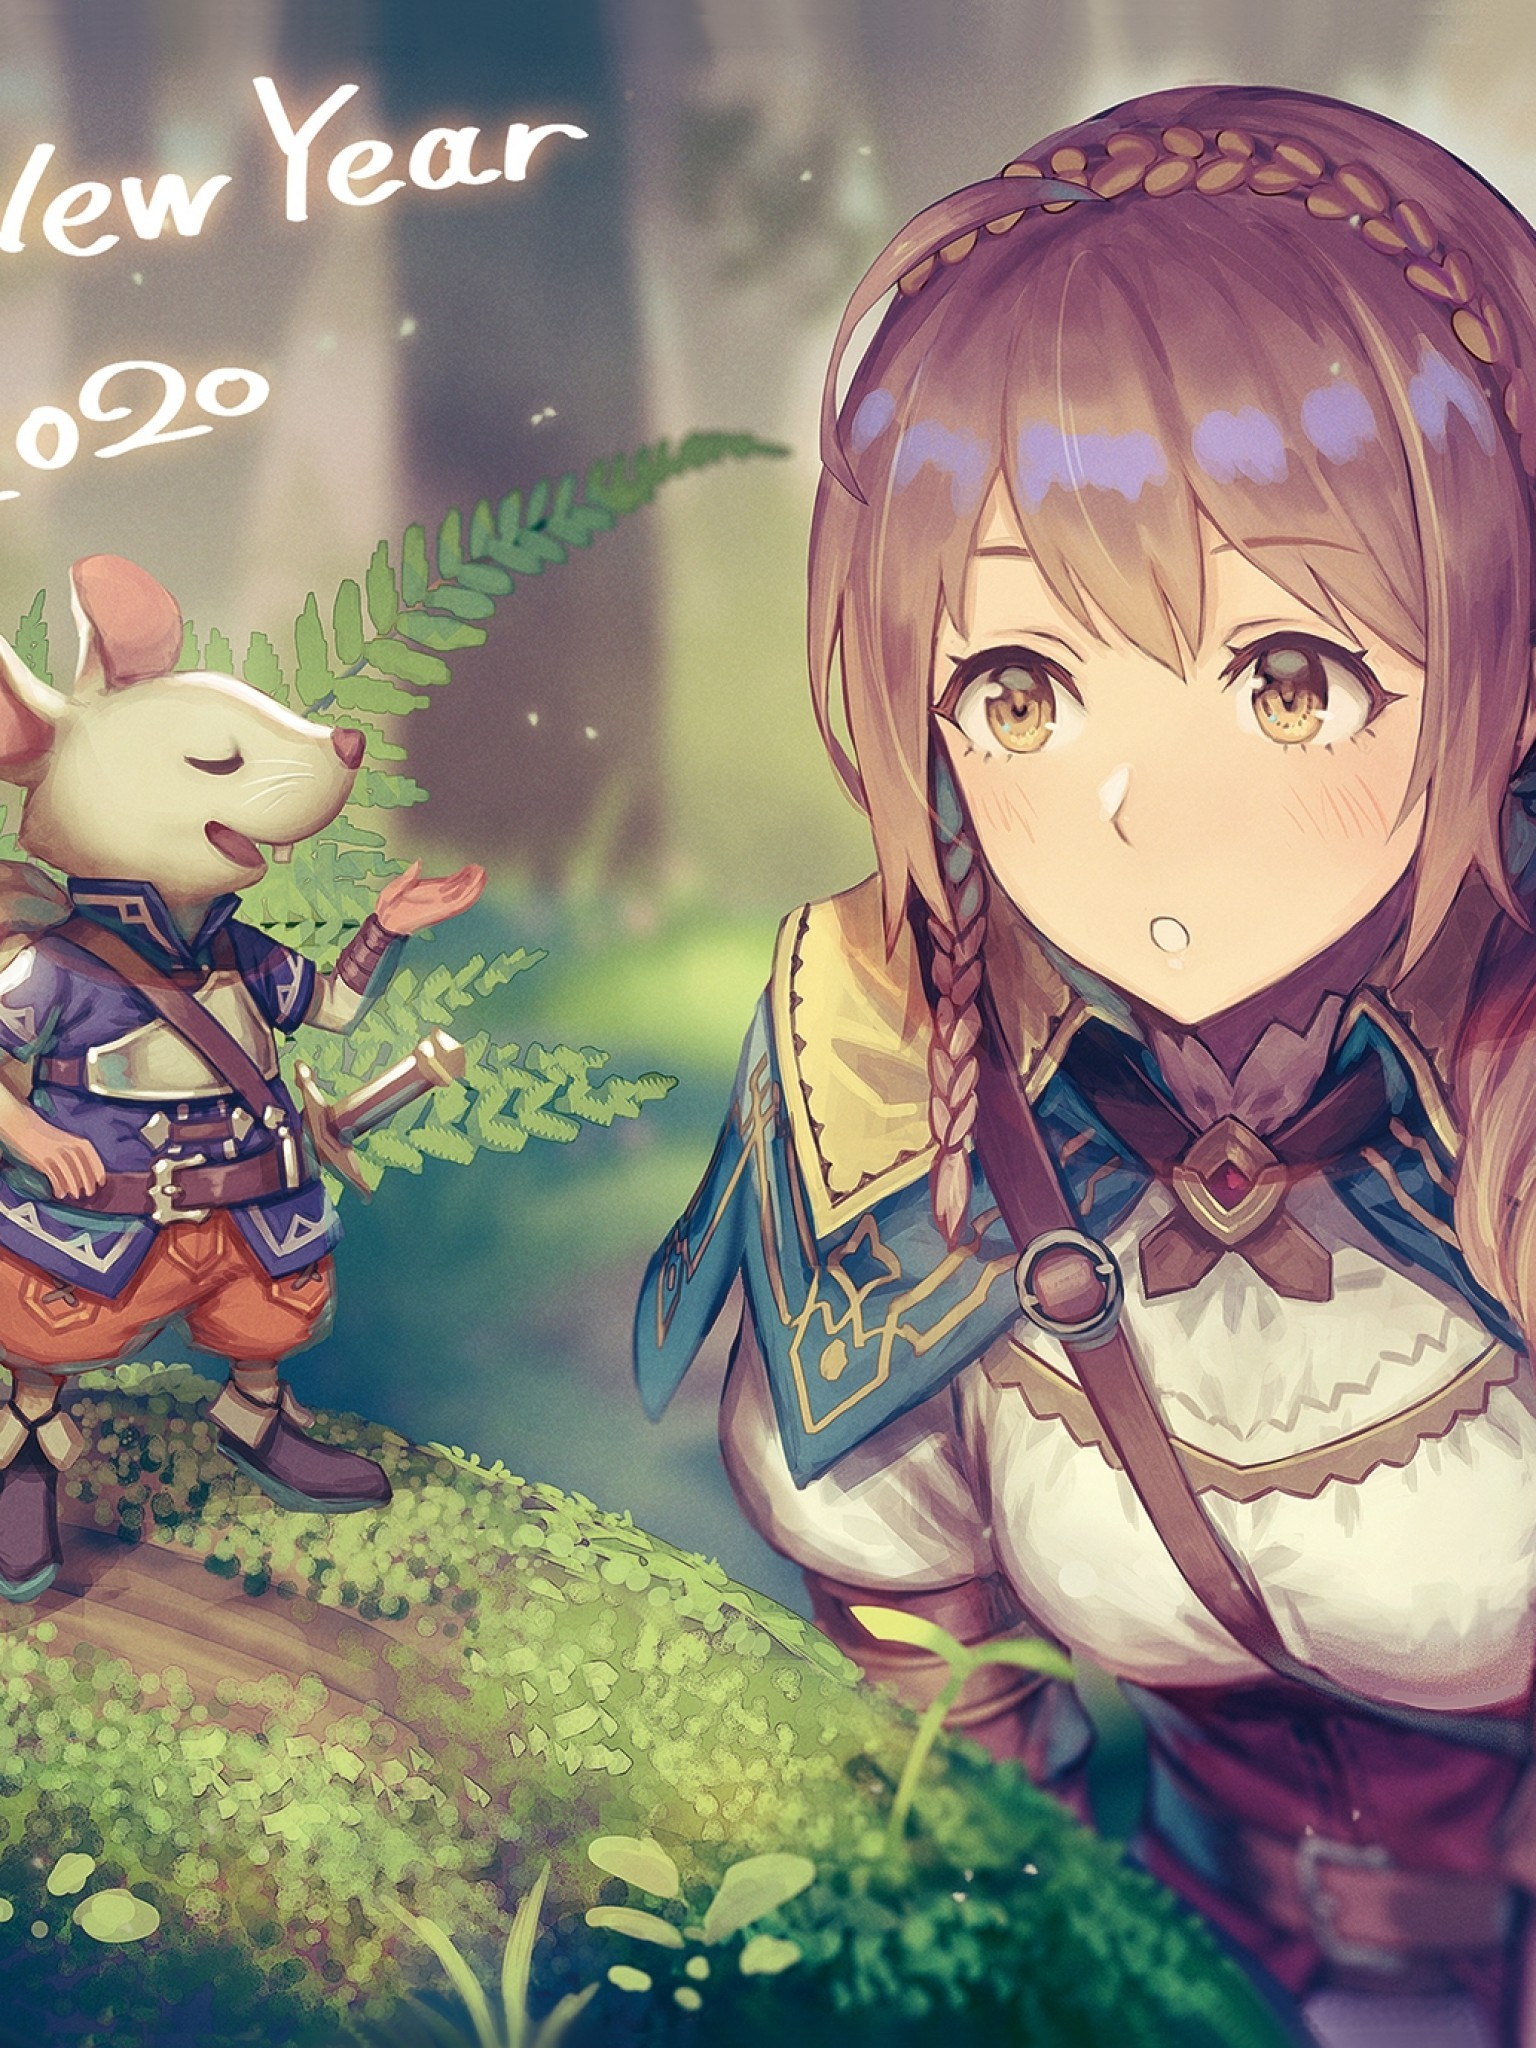 Download 1536x2048 Anime Girl Adventurer Forest Light Armor 1536x2048